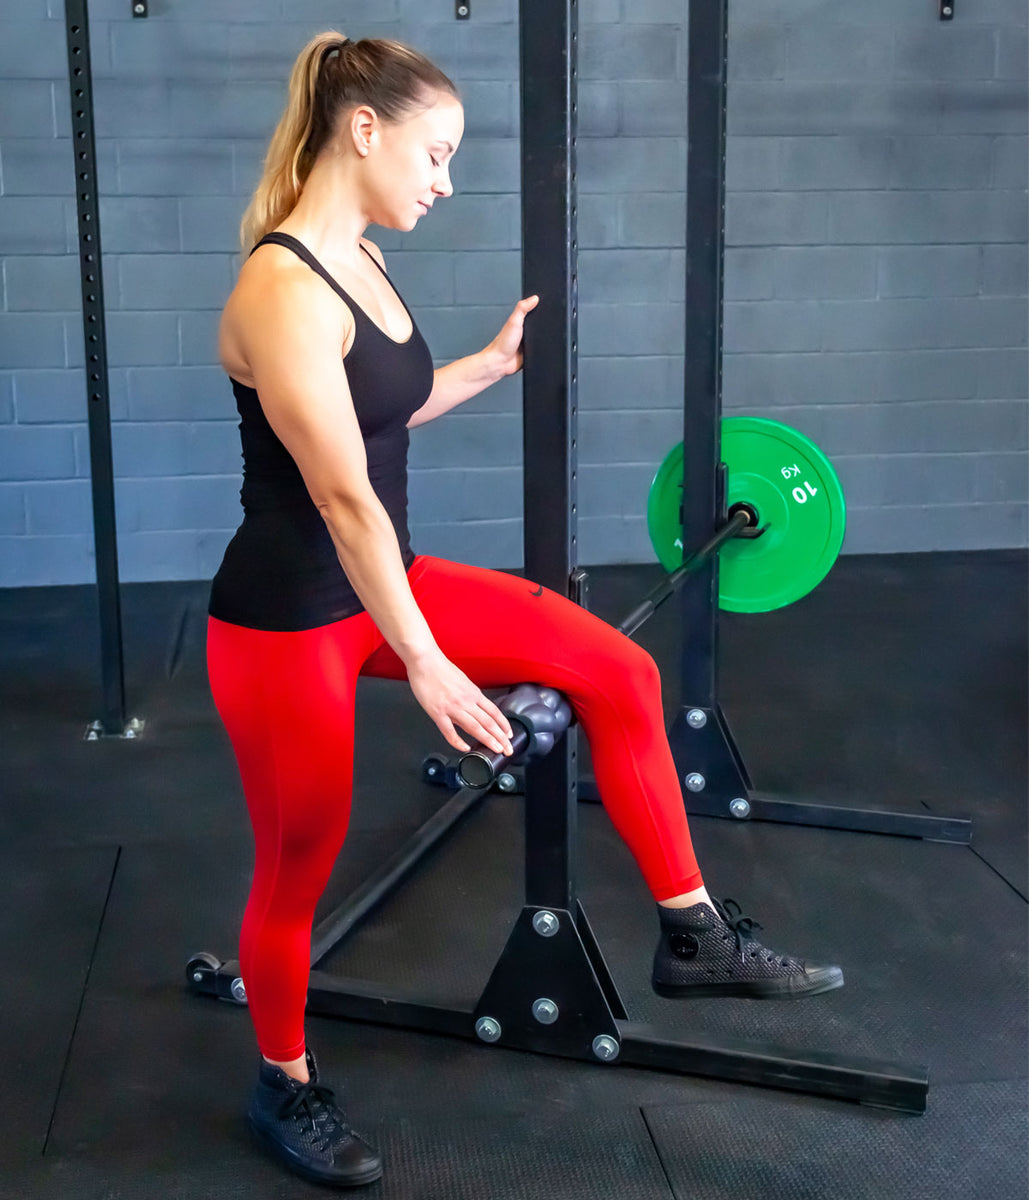 The Revolv Barbell Roller alleviates muscle tension when mounted on a barbell in a rack.